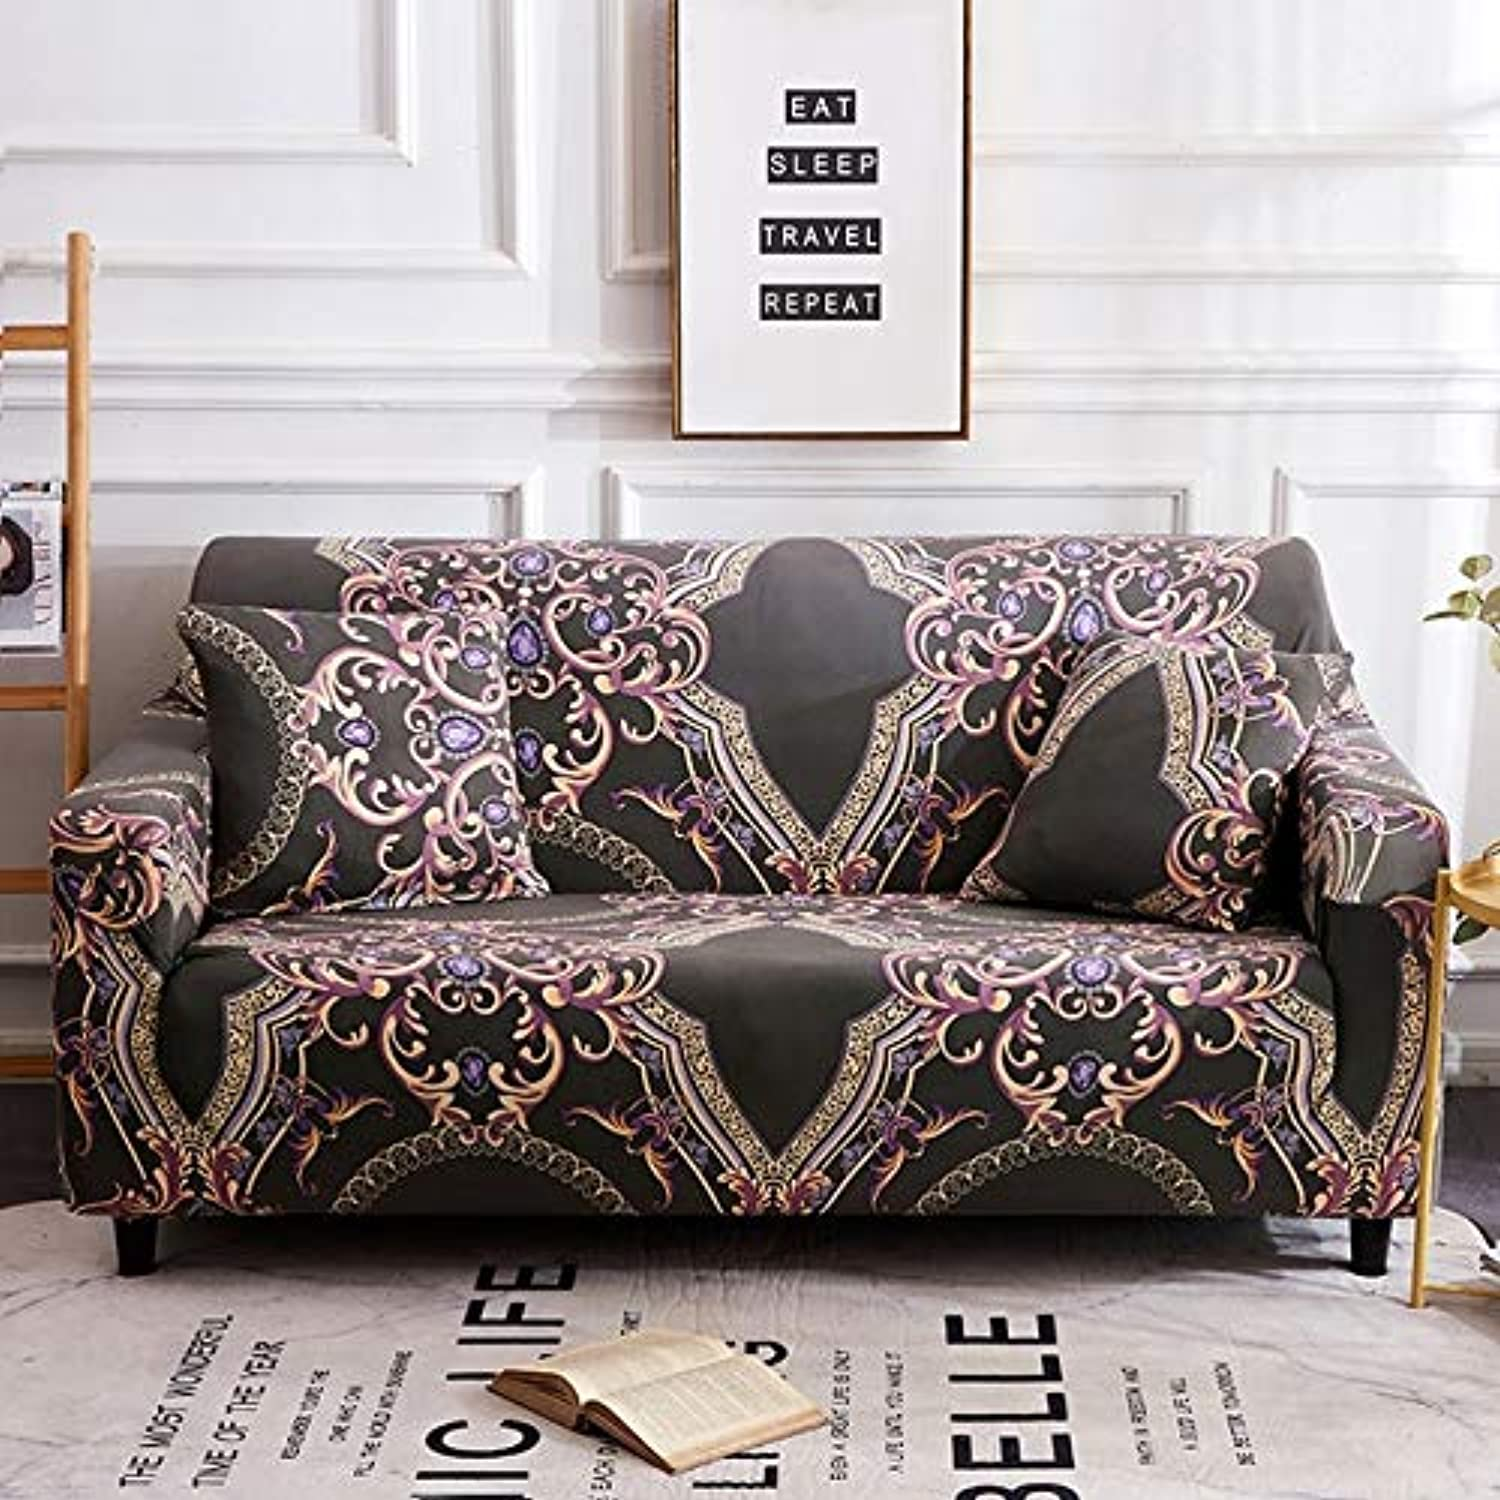 Fit For 1 2 3 4 Seater Sofa Cover Tight Wrap All Inclusive ...